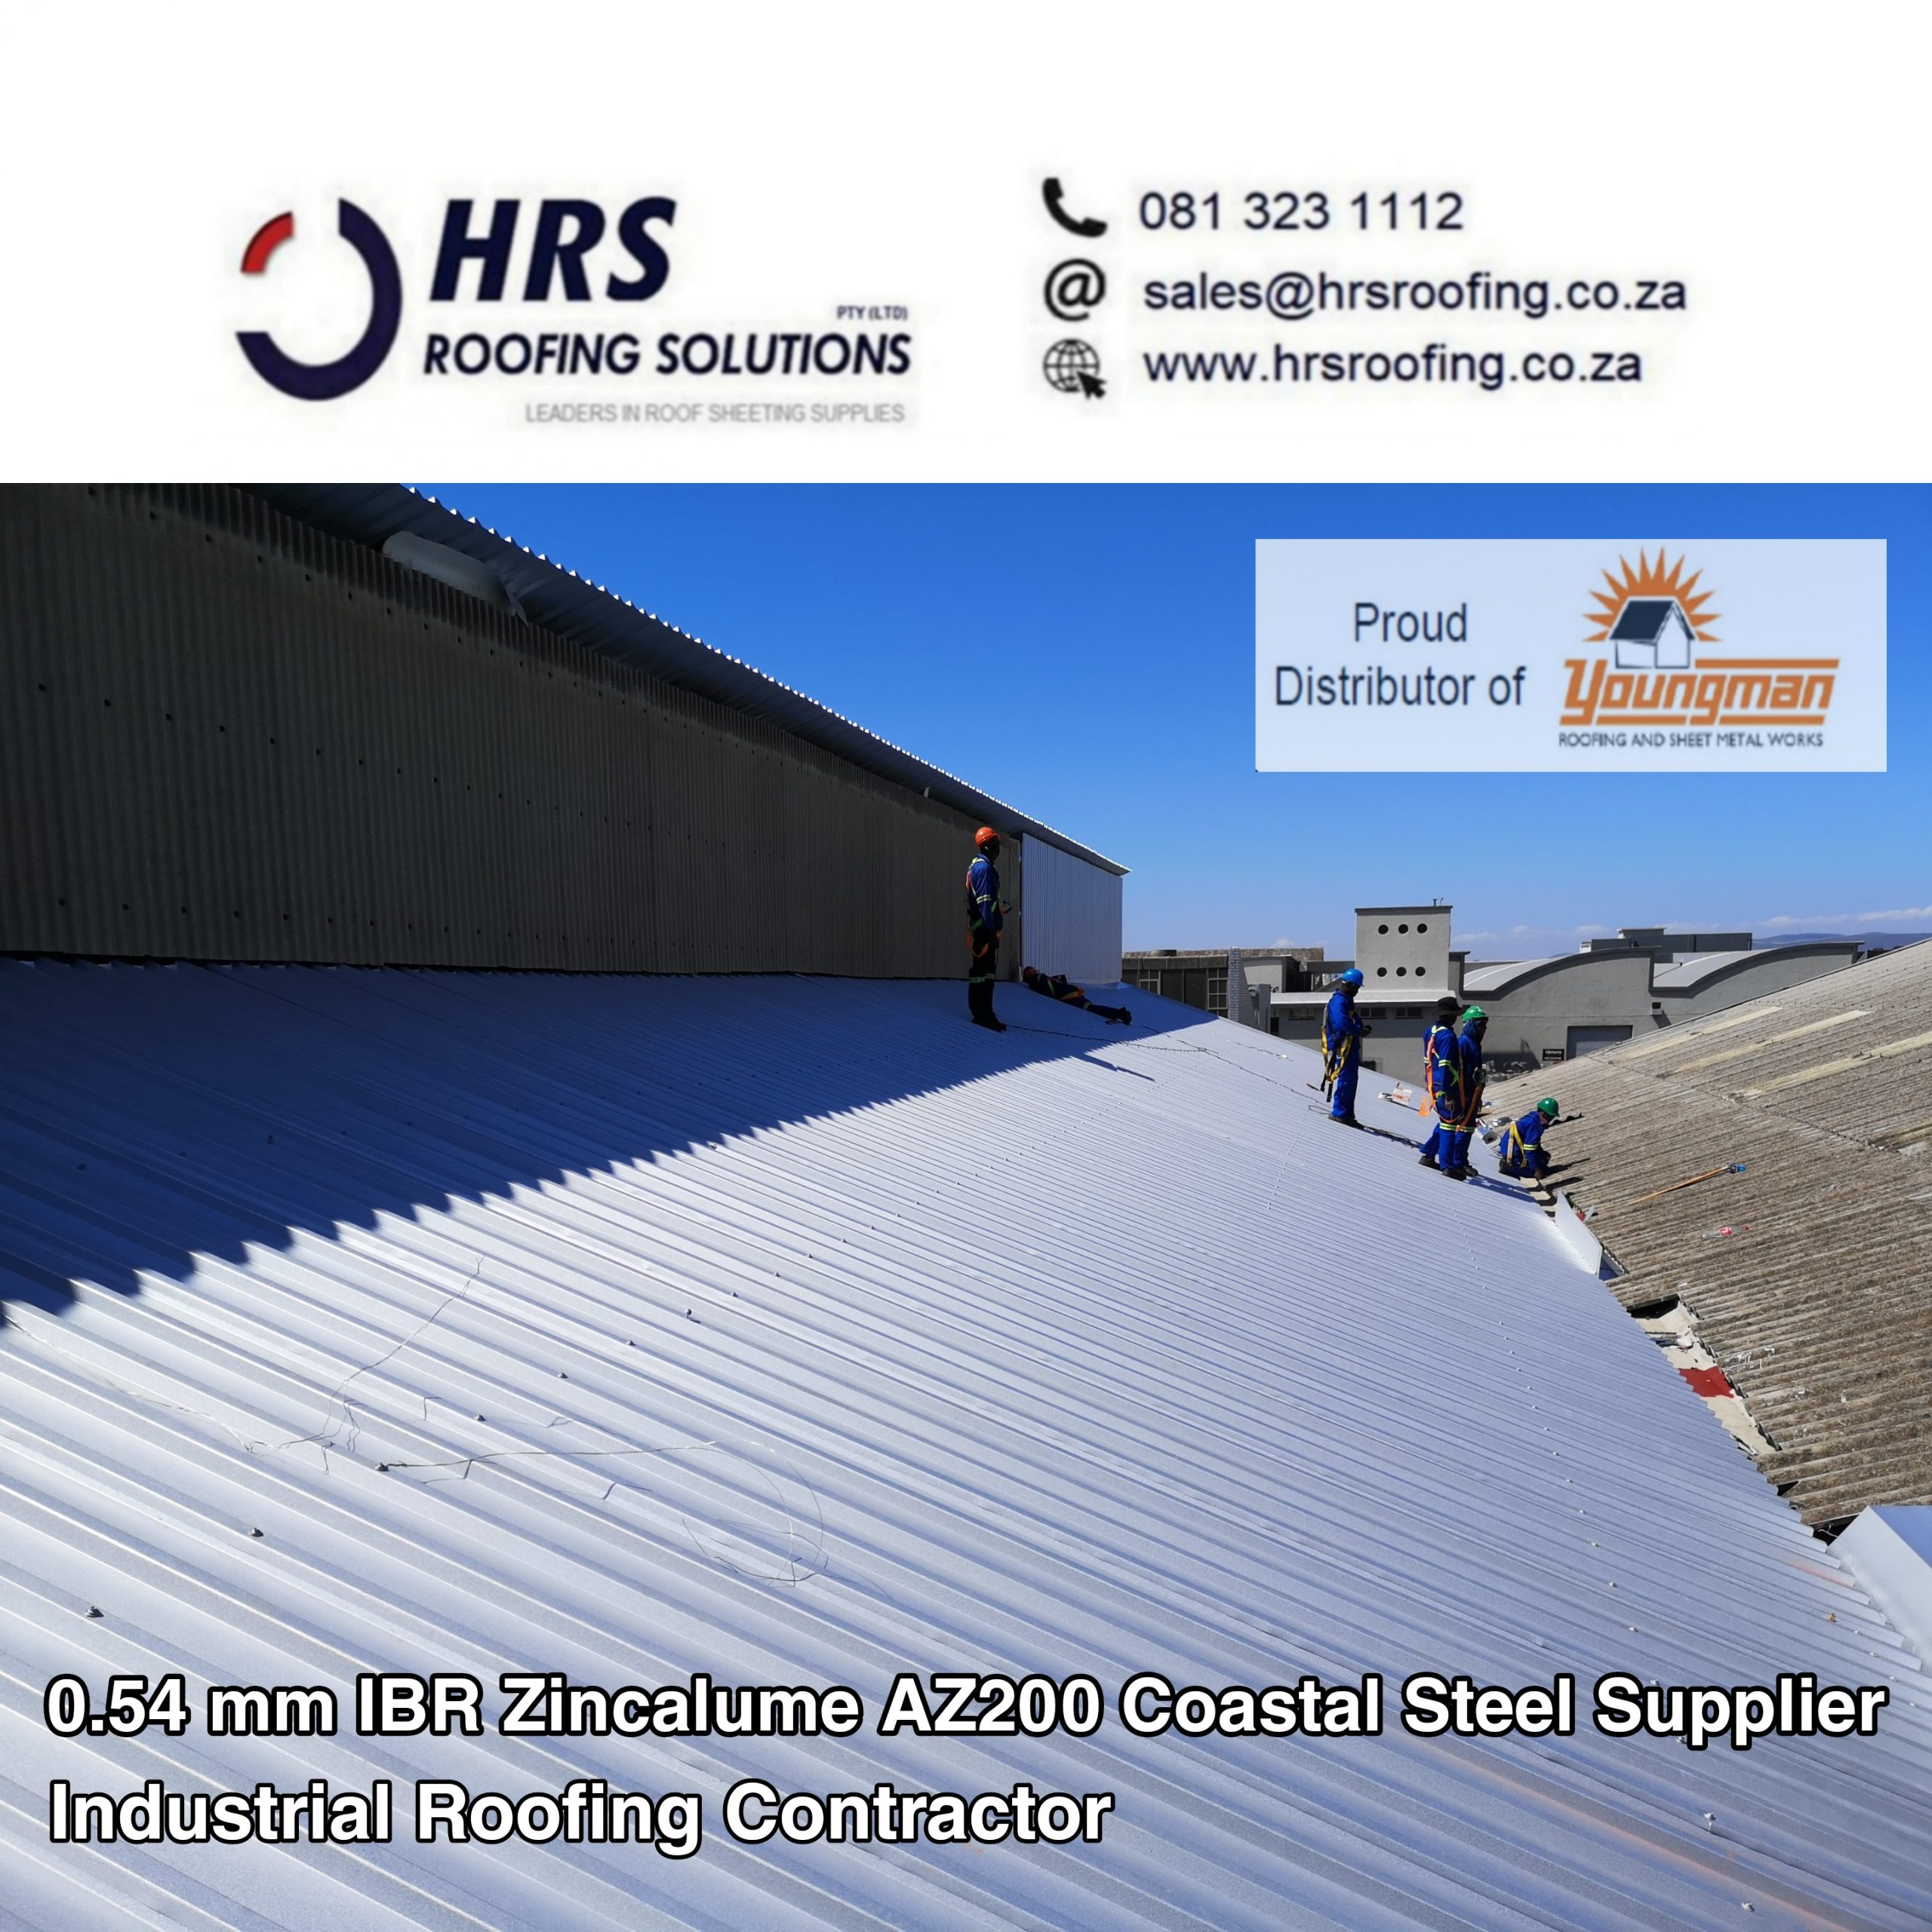 PicsArt 12 05 06.42.46 scaled - Roofing Gallery